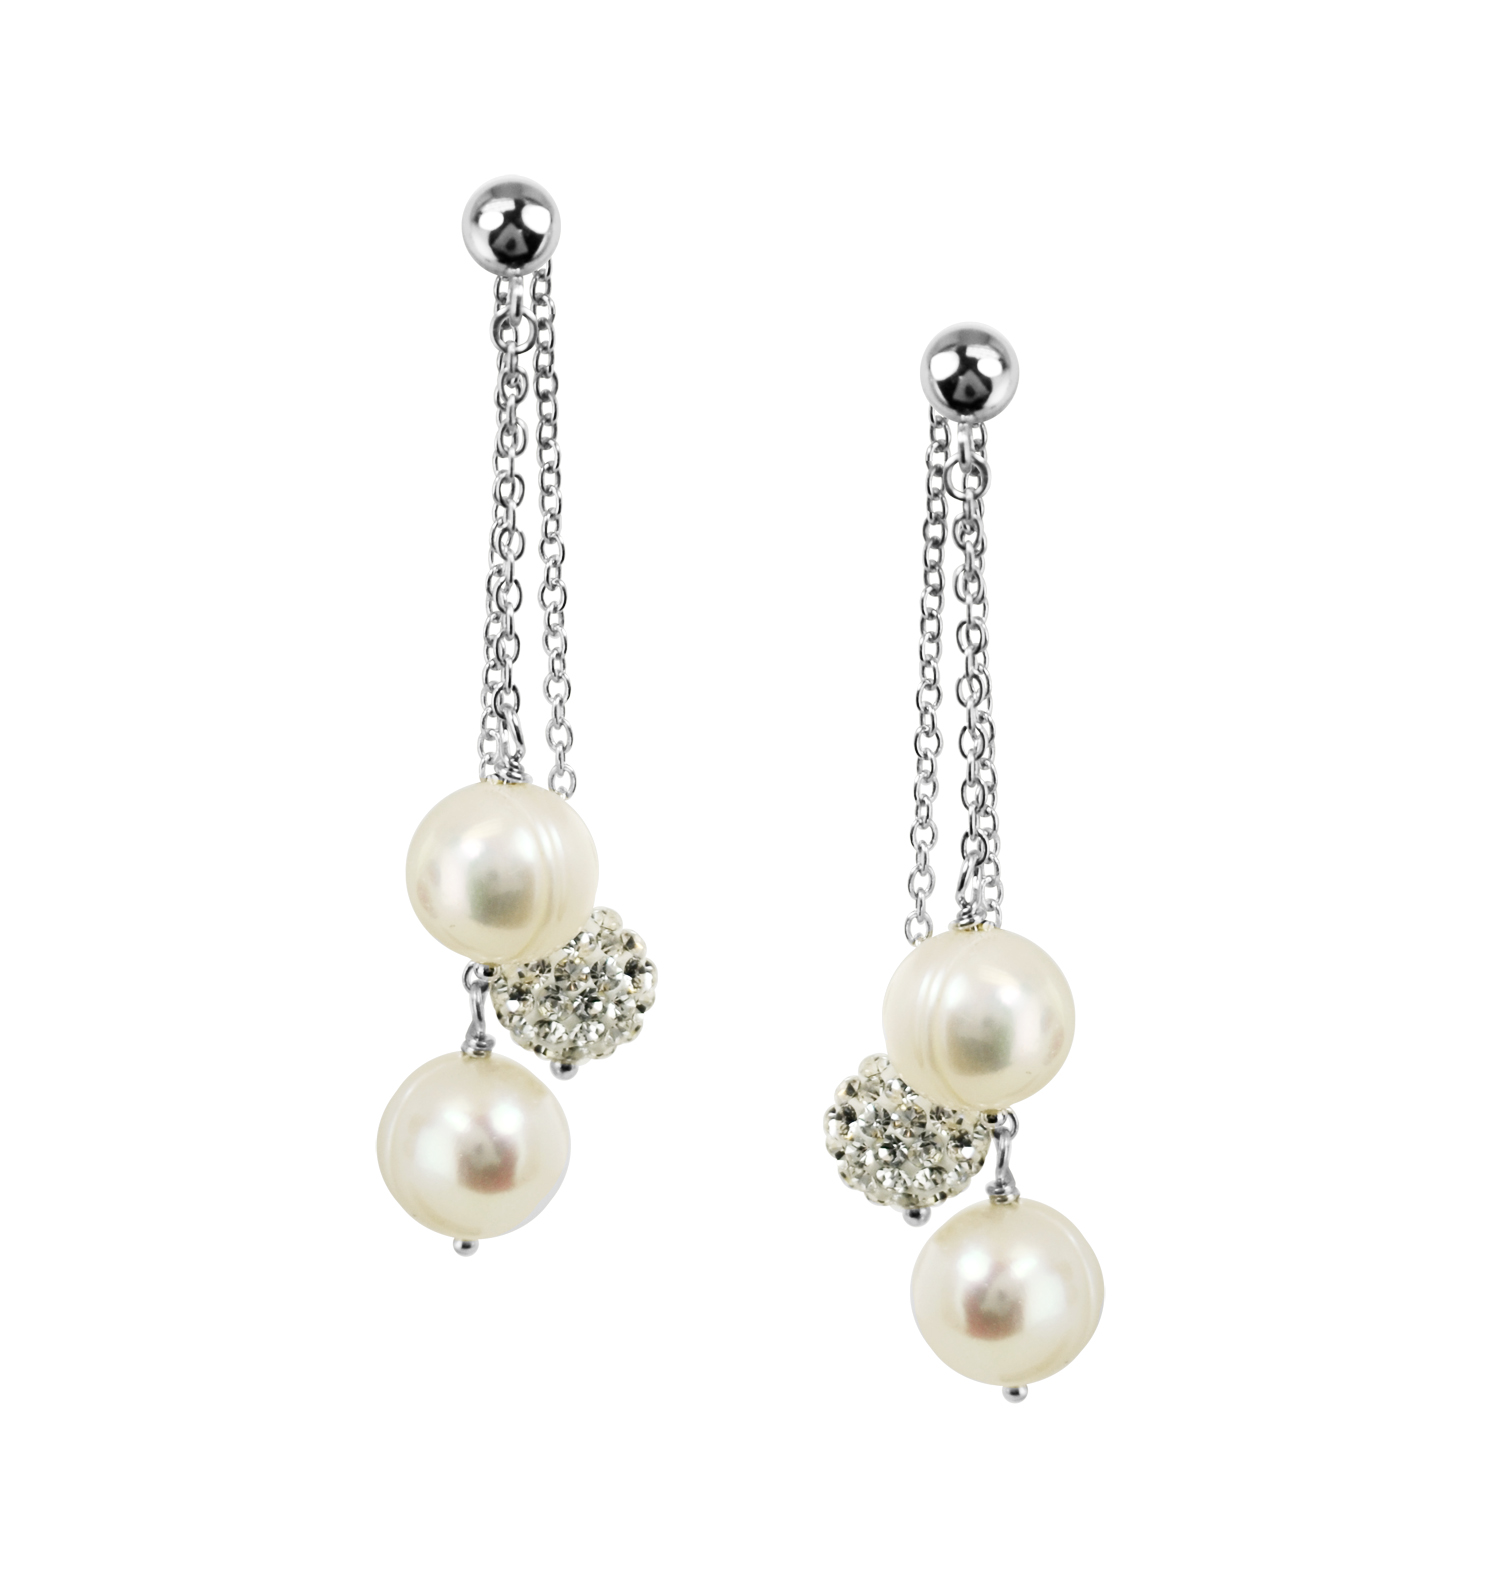 Honora Le5672wh Jpg Brand Name Designer Jewelry In Orland Park Illinois